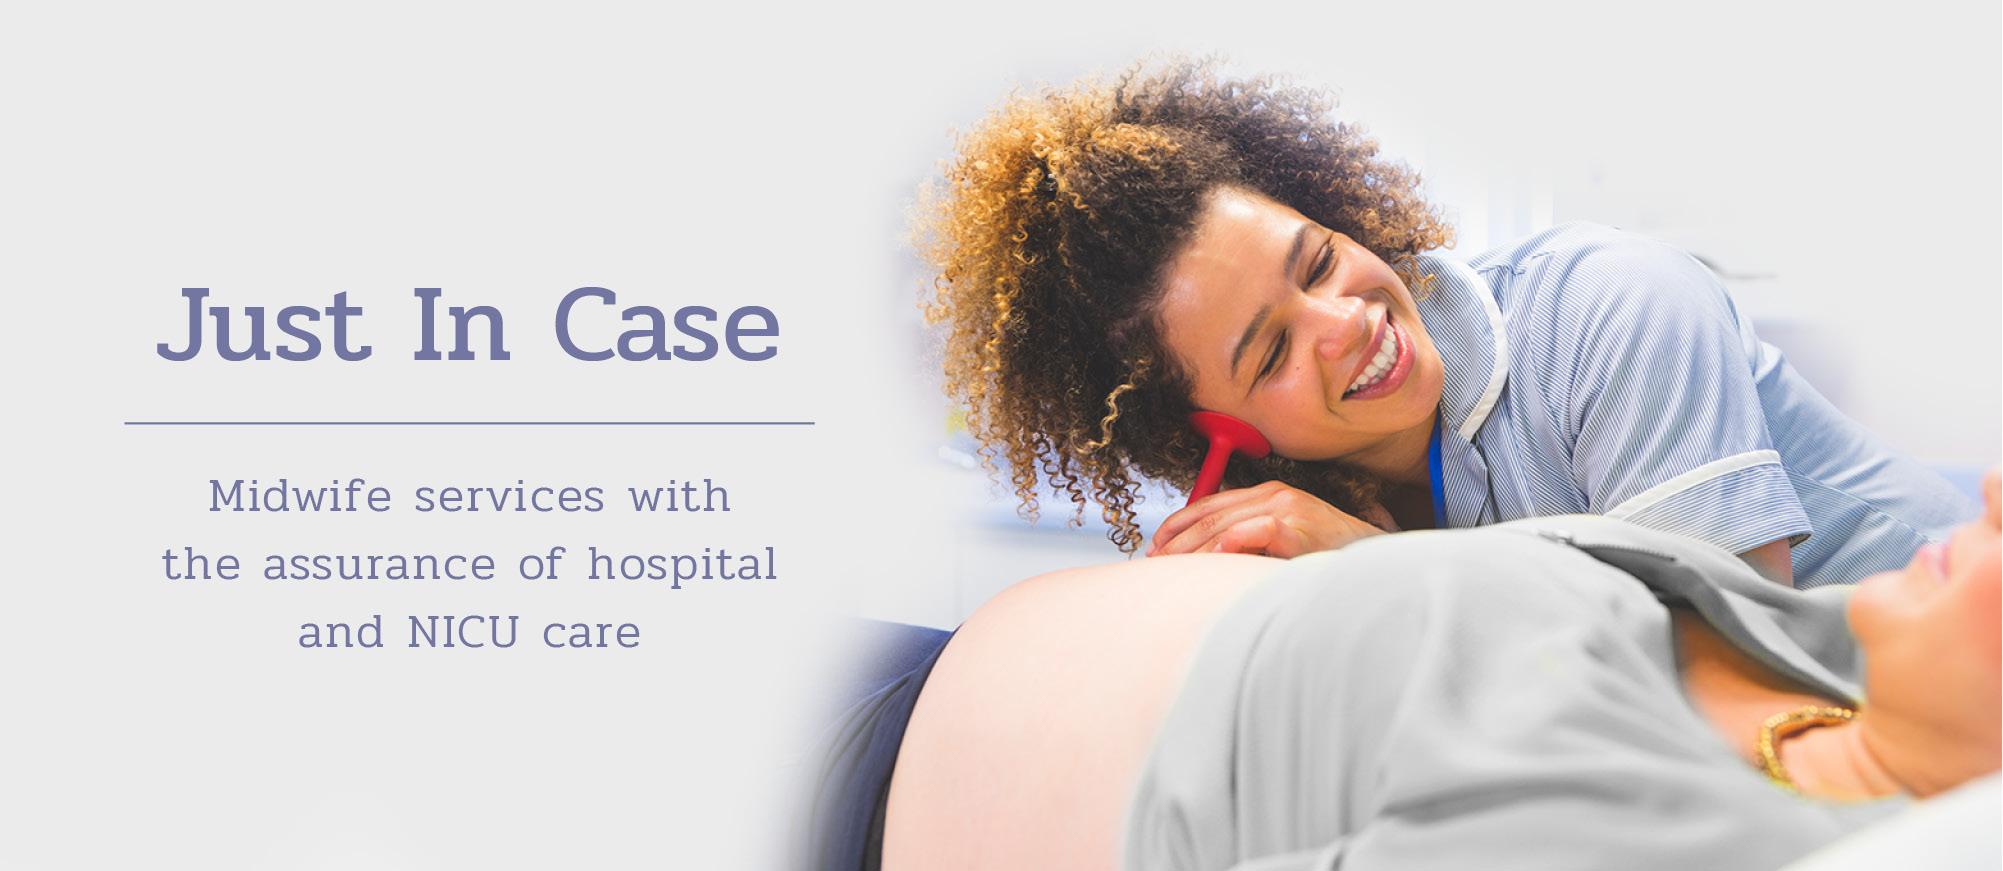 Just In Case - Midwife services with the assurance of hospital and NICU care